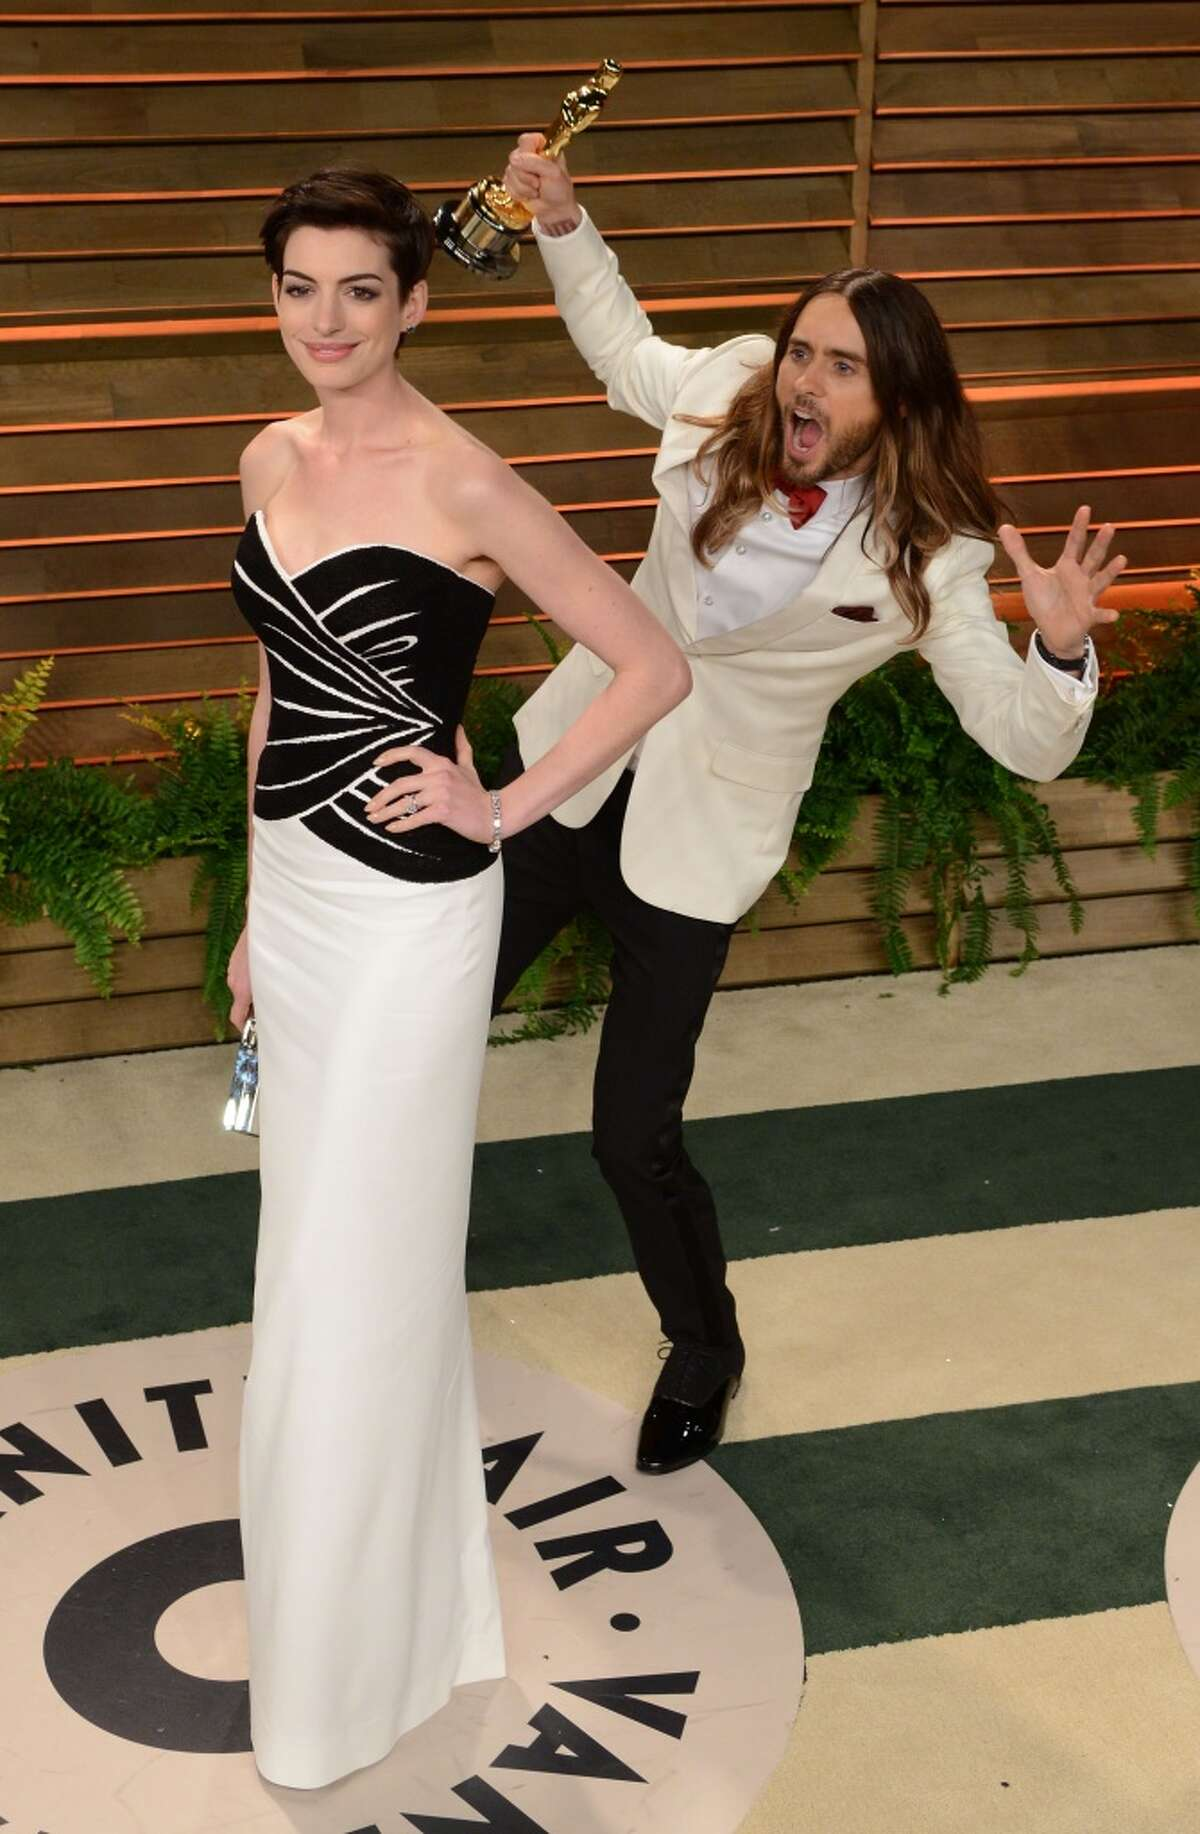 Actress Anne Hathaway gets photobombed by Jared Leto arrive at the 2014 Vanity Fair Oscar Party Hosted By Graydon Carter on March 2, 2014 in West Hollywood, California.